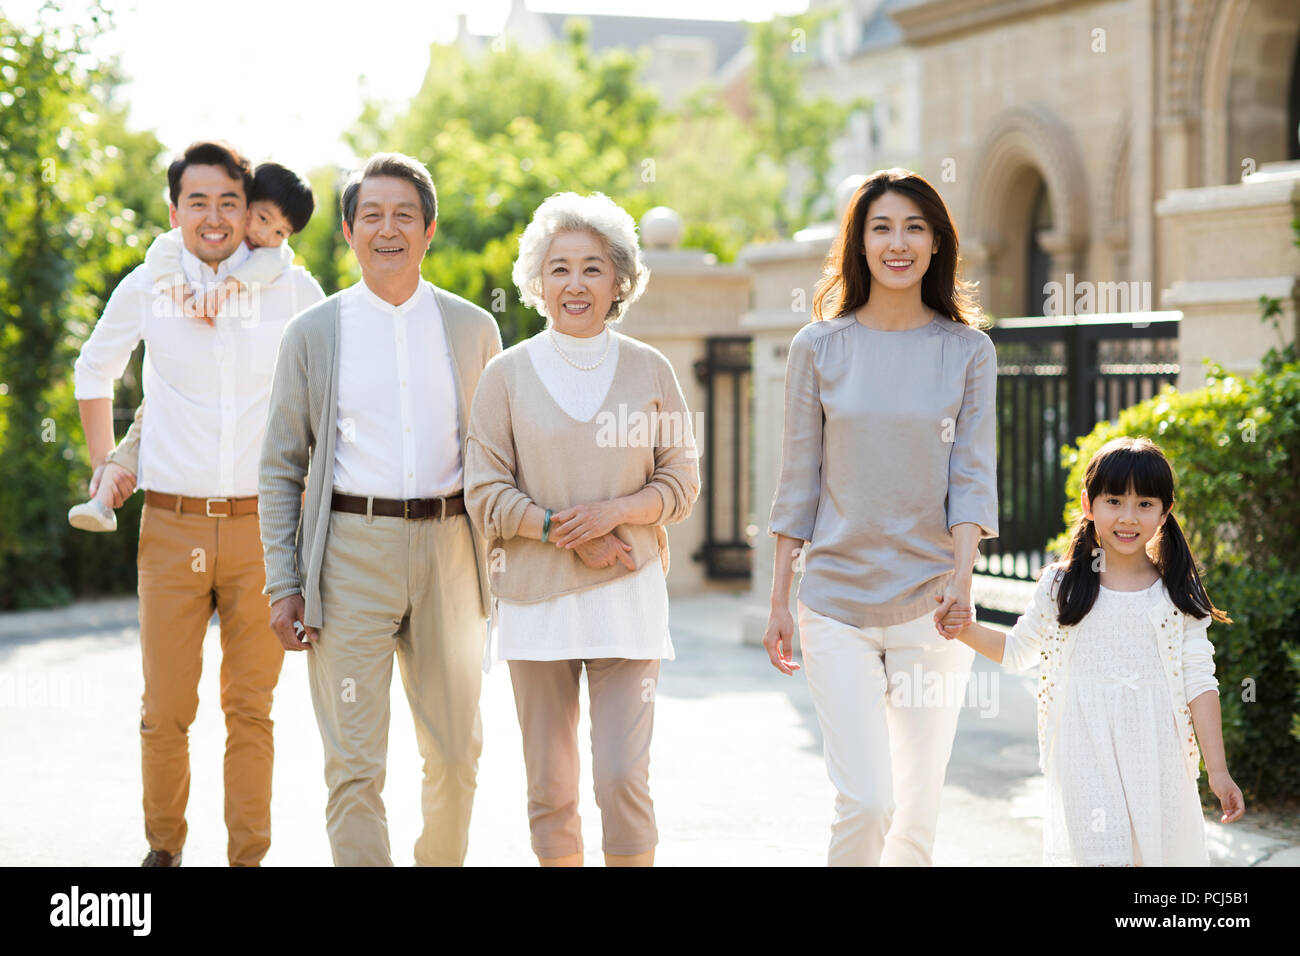 Happy Chinese family strolling outside - Stock Image